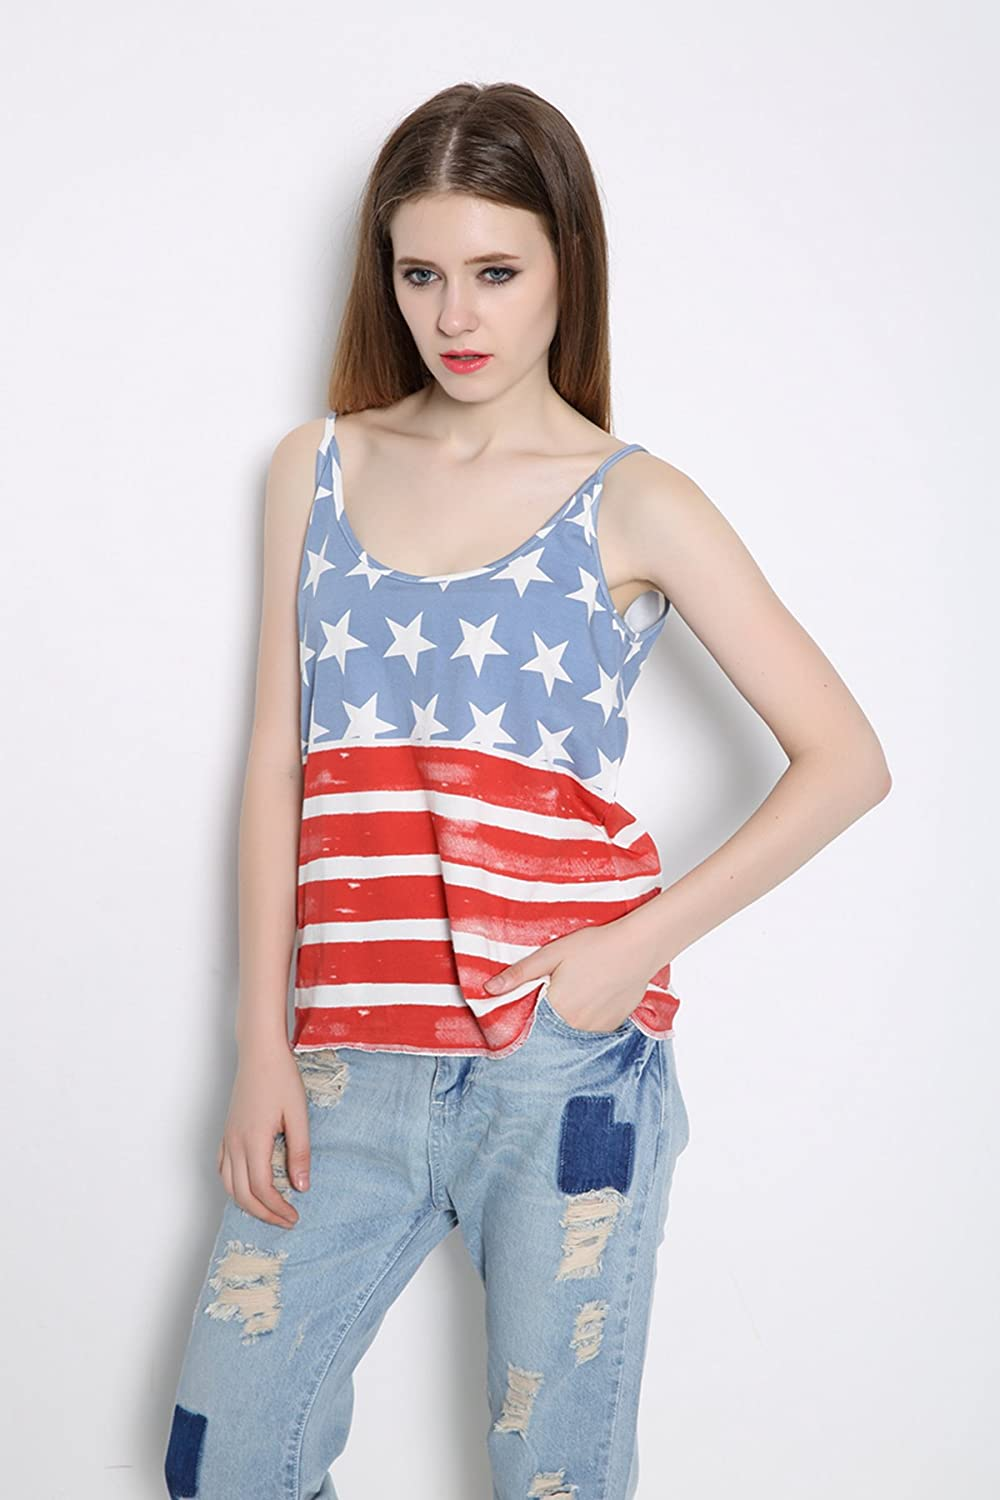 9b33cd71e666fc REINDEAR Fashion Women Patriotic American Flag Print Lace Camisole Tank Top  US Seller at Amazon Women s Clothing store